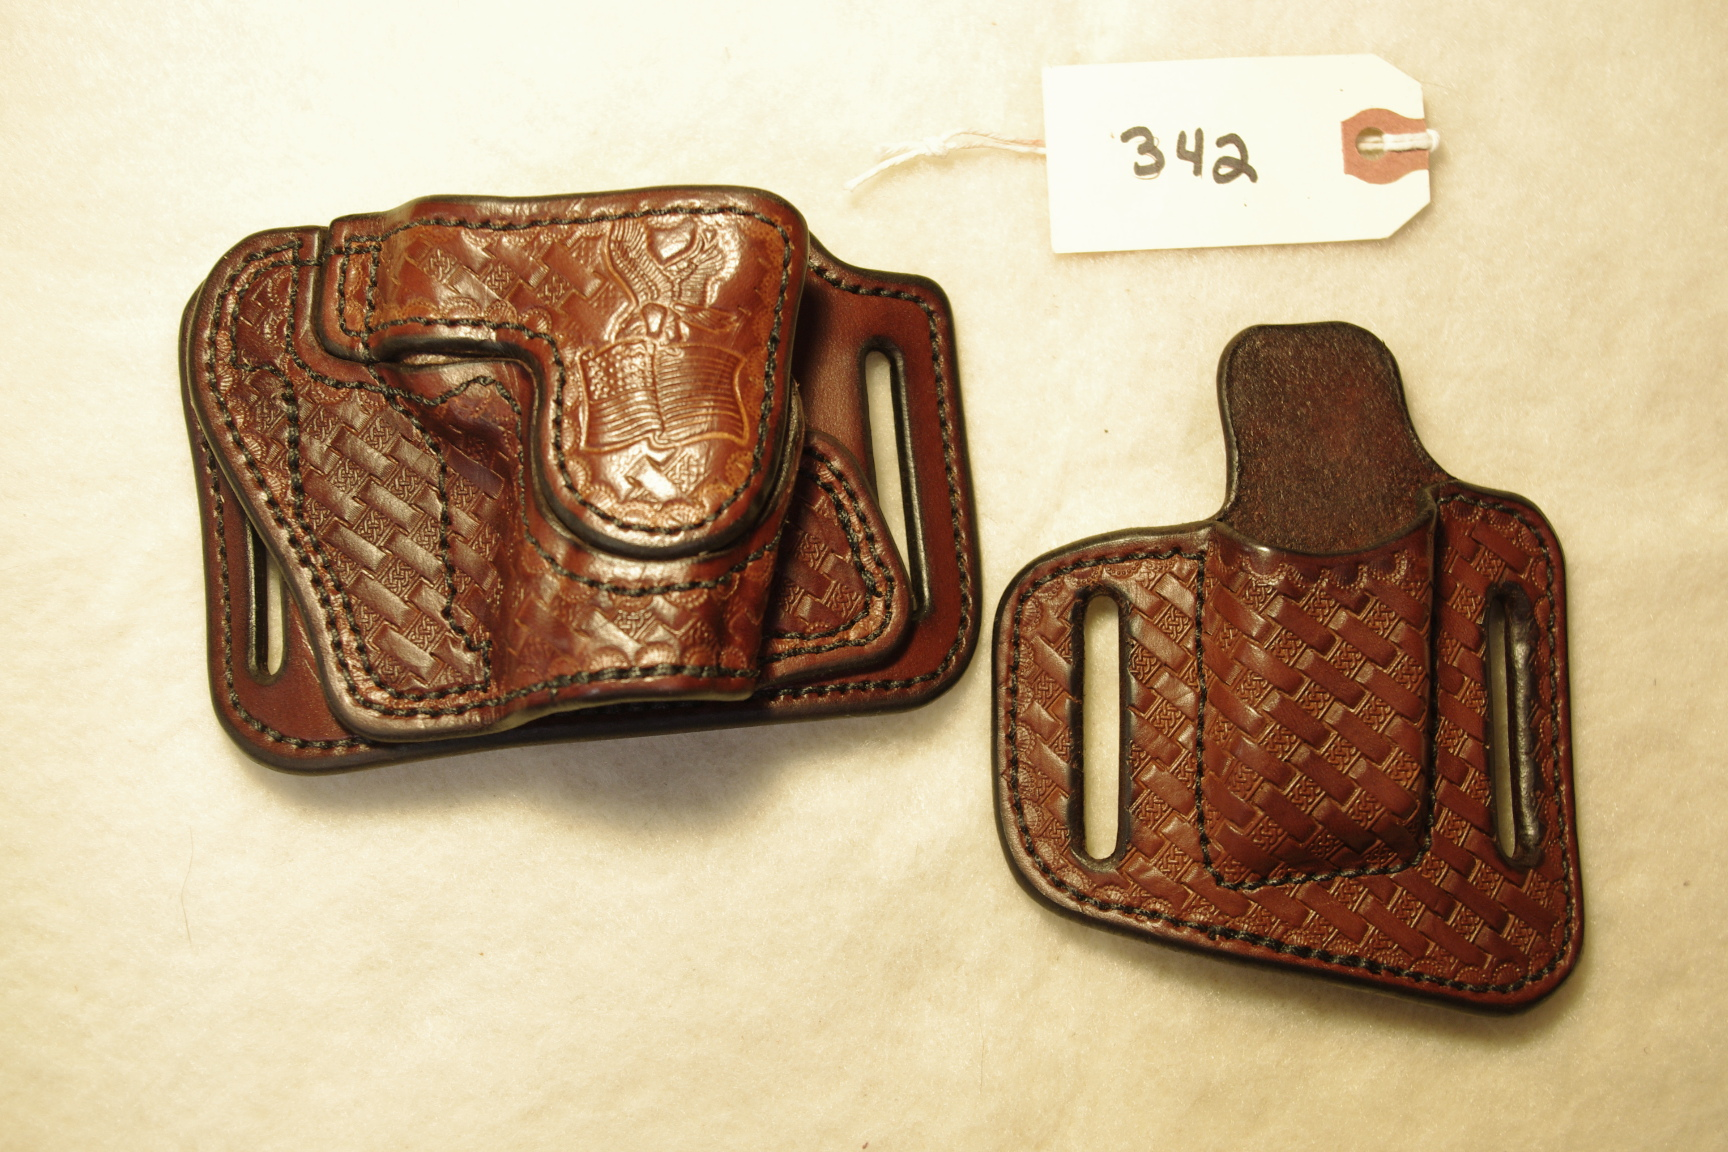 American Holster CompanyThe High Ride - American Holster Company